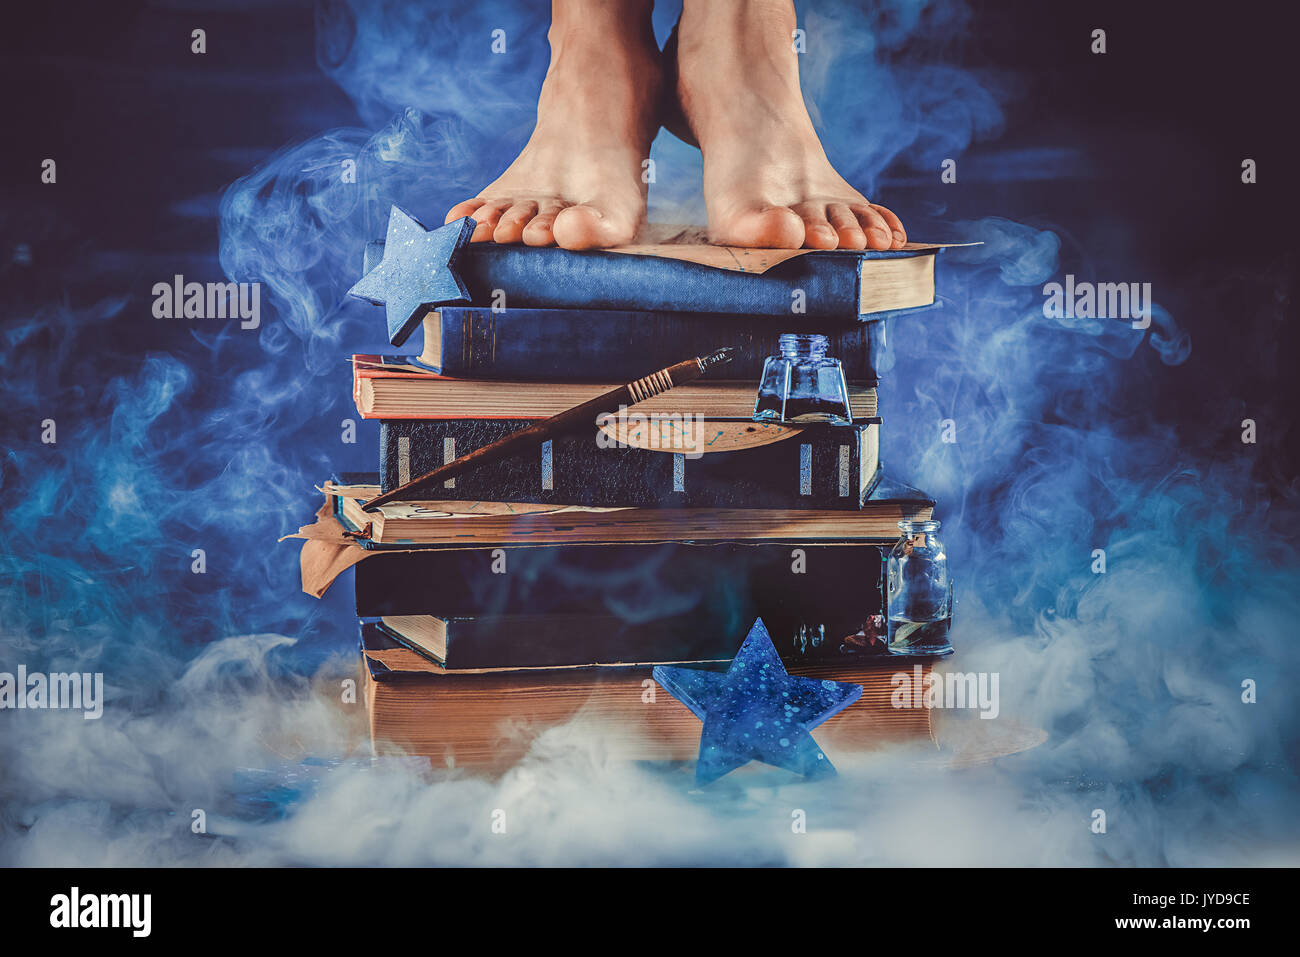 Kid standing on a pile of books in the middle of a cloud of smoke. Dark still life in shades of blue. Education metaphor. - Stock Image